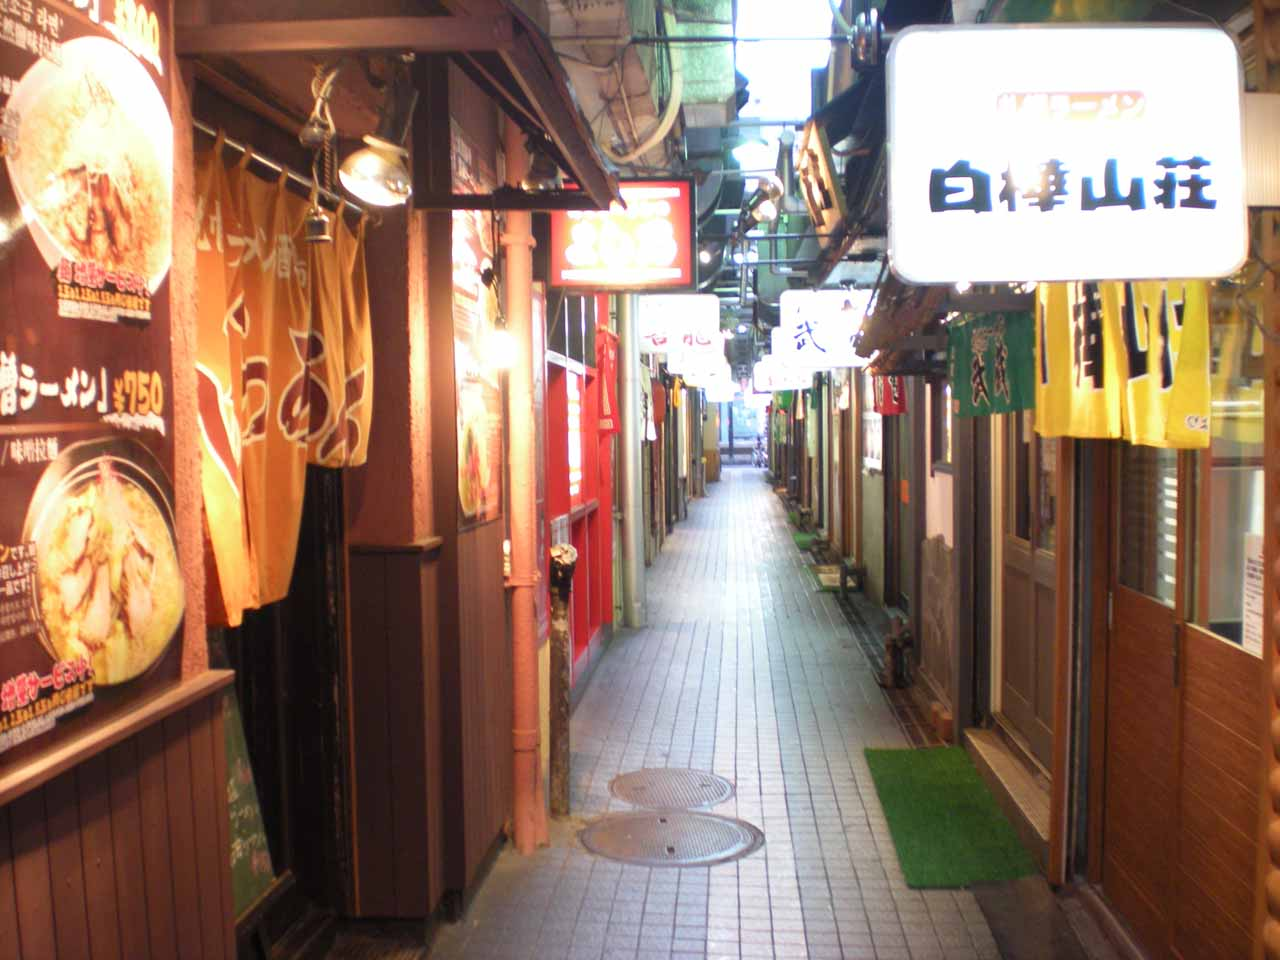 Within an hour's drive southwest of Asahikawa was the main city of Sapporo, which had lots of things to see and do including Ramen Alley